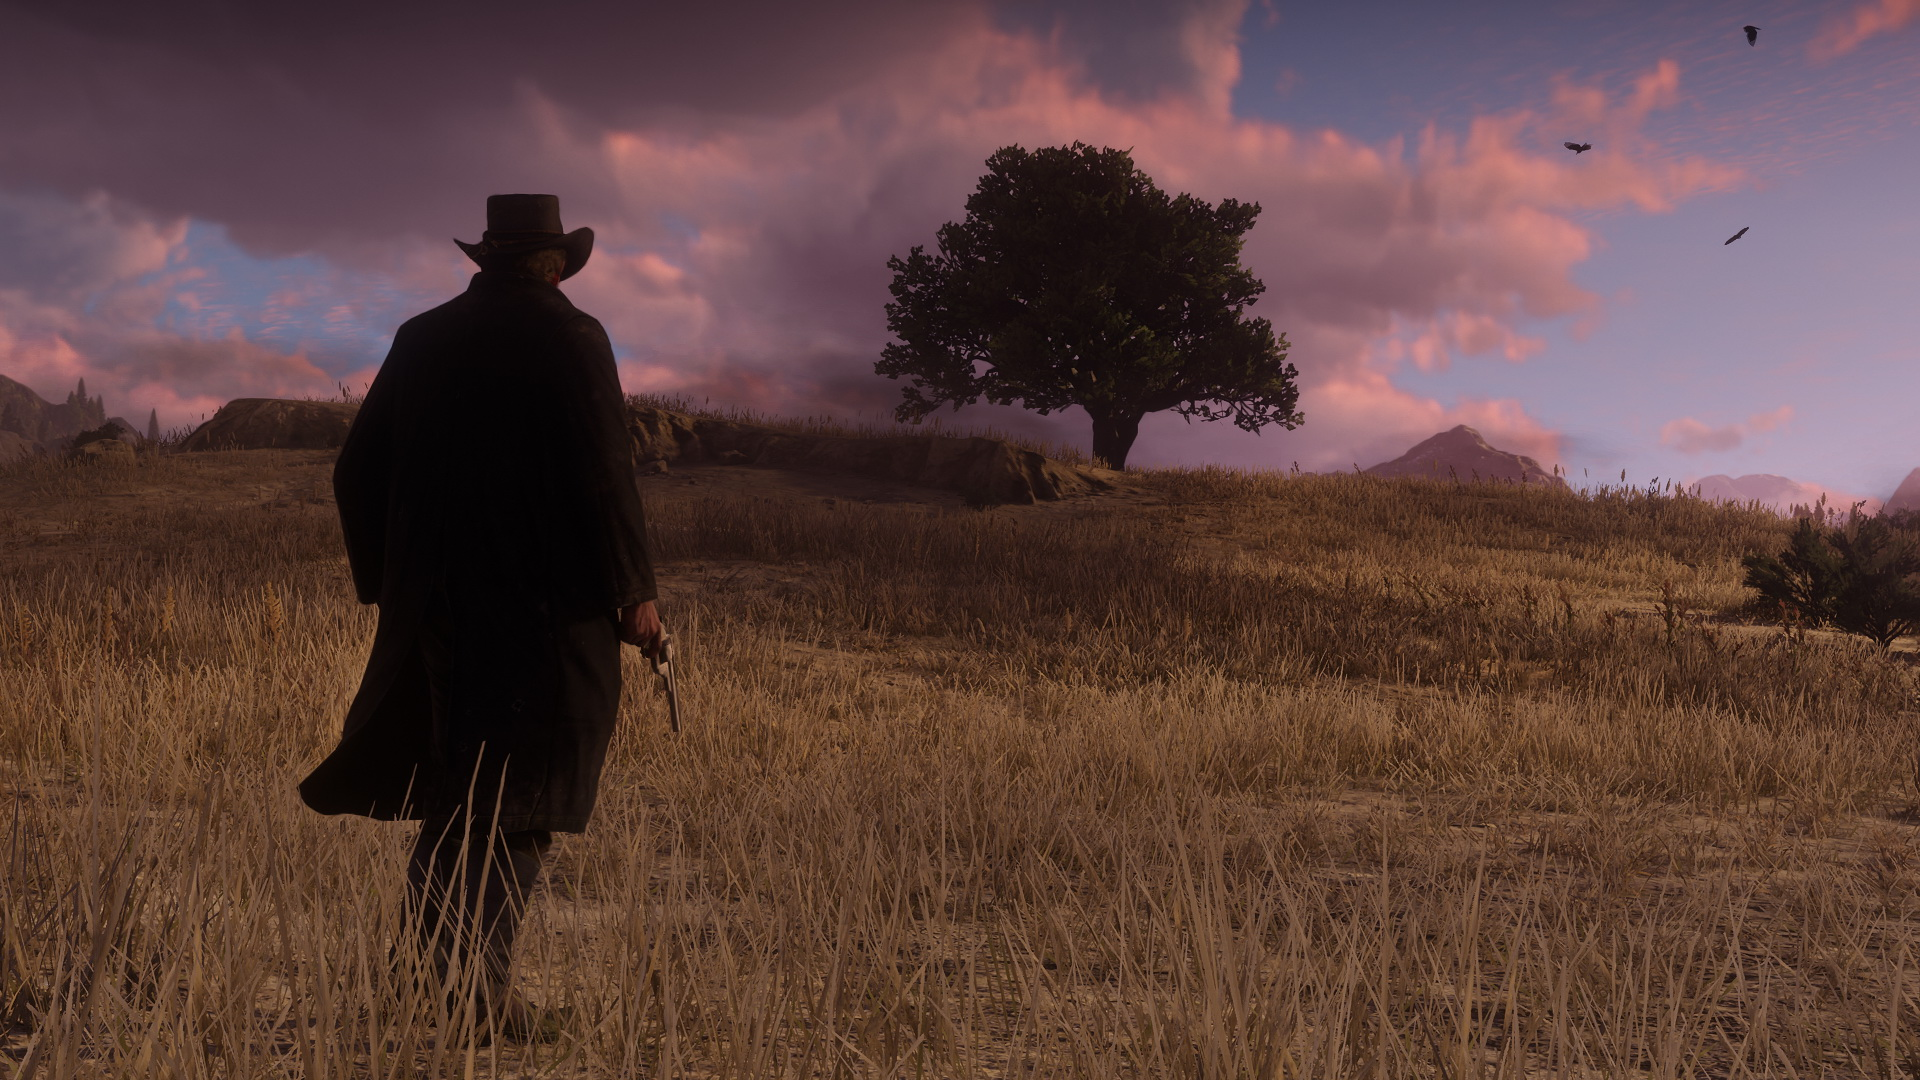 Red Dead Redemption 2 is coming to PC - VG247  Red Dead Redemp...